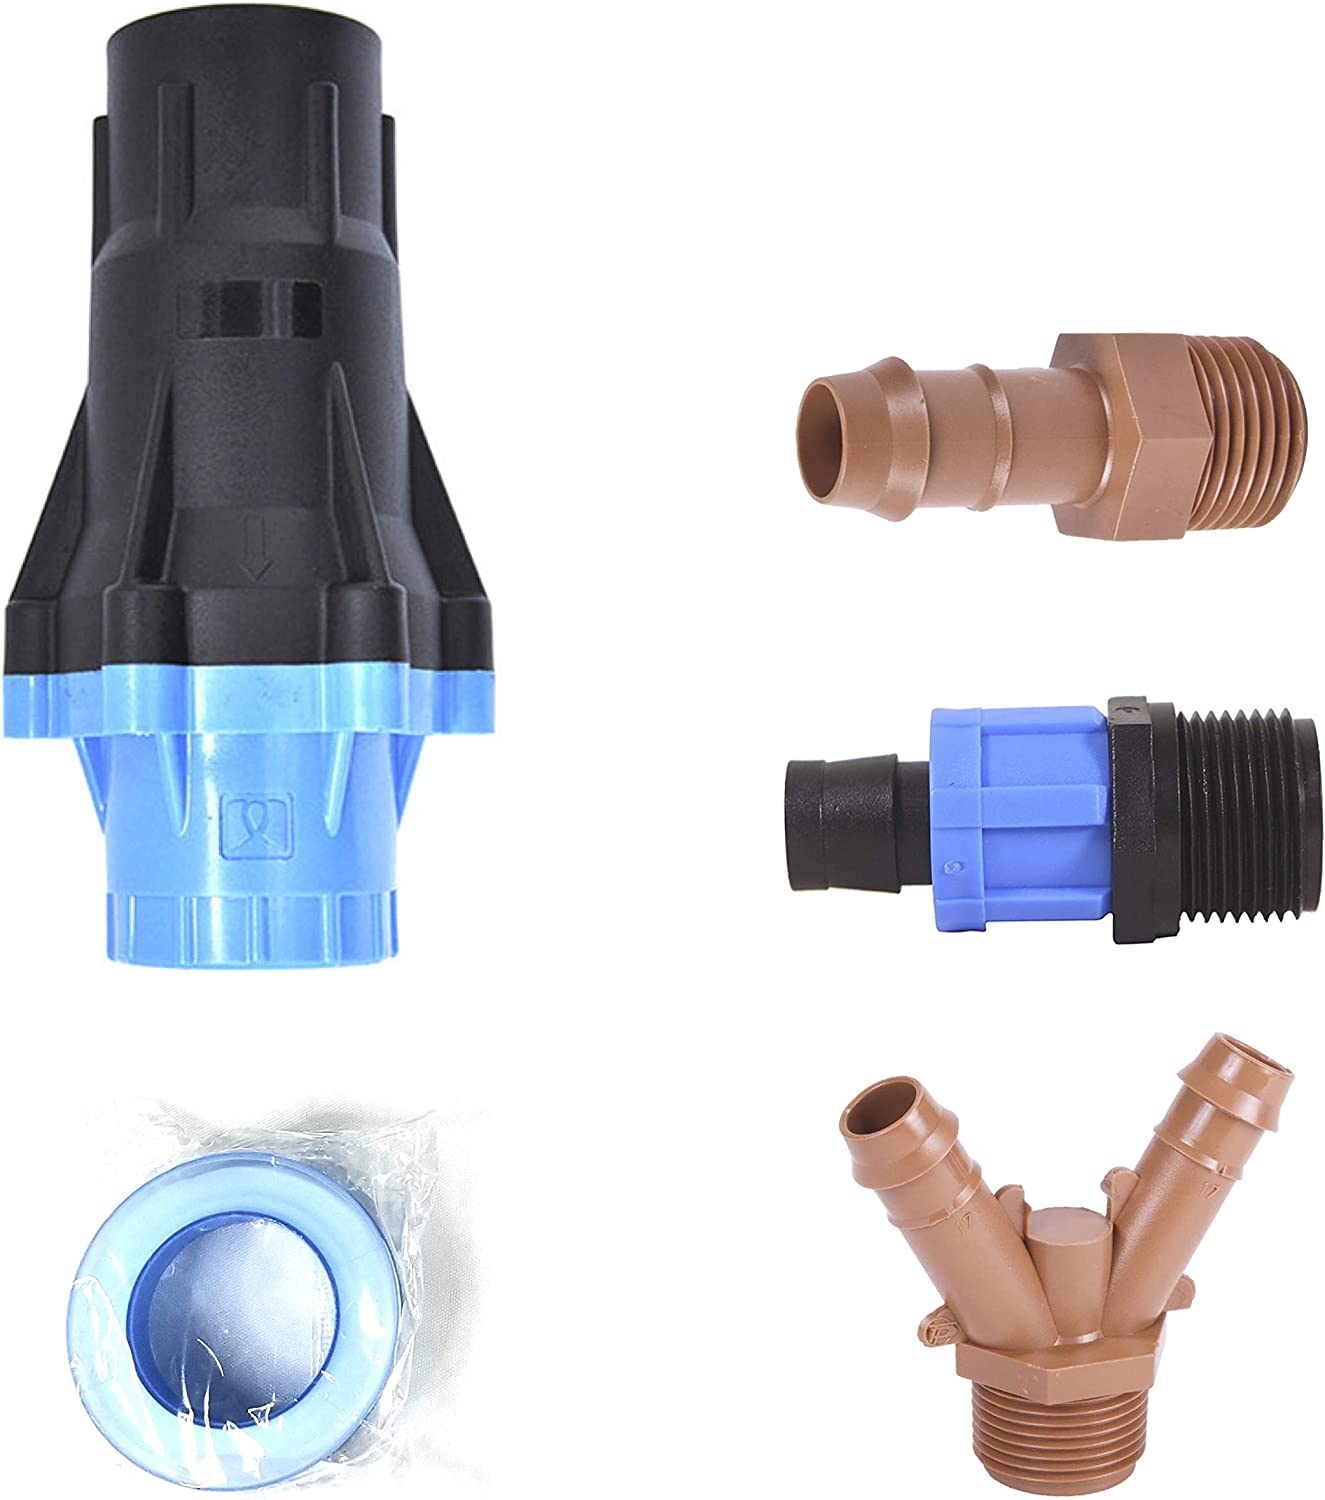 """Universal Drip Irrigation Faucet Adapter Connector Kit: Connect Any 1/2 Inch Tubing to 3/4"""" Inch Faucet/Garden Hose - Includes 25PSI Pressure Regulator, Three Adapters & Teflon Tape"""